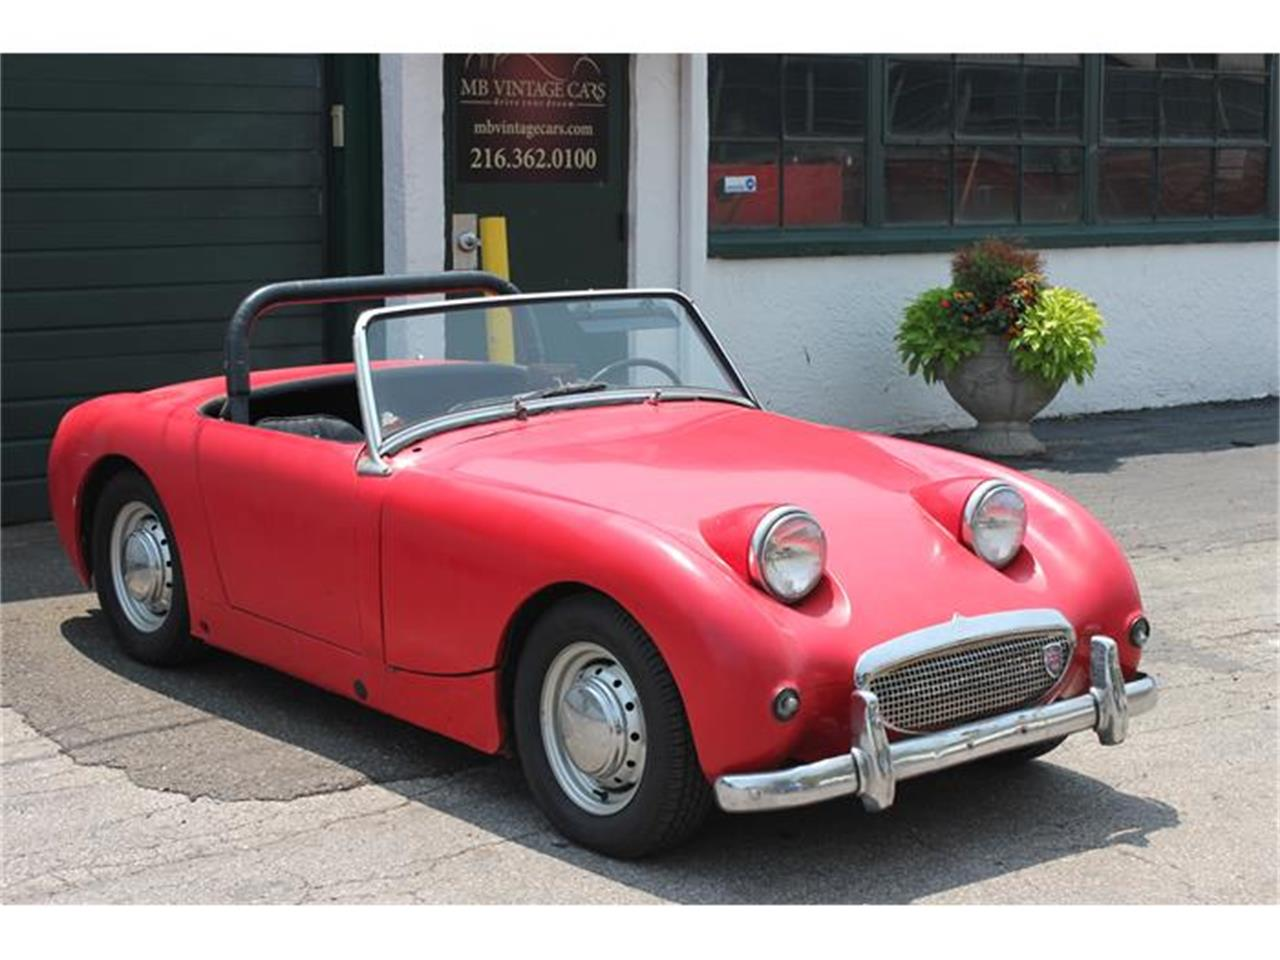 1961 Austin Healey Bugeye Sprite for Sale   ClassicCars com   CC 695310 Large Picture of  61 Bugeye Sprite   EWI6